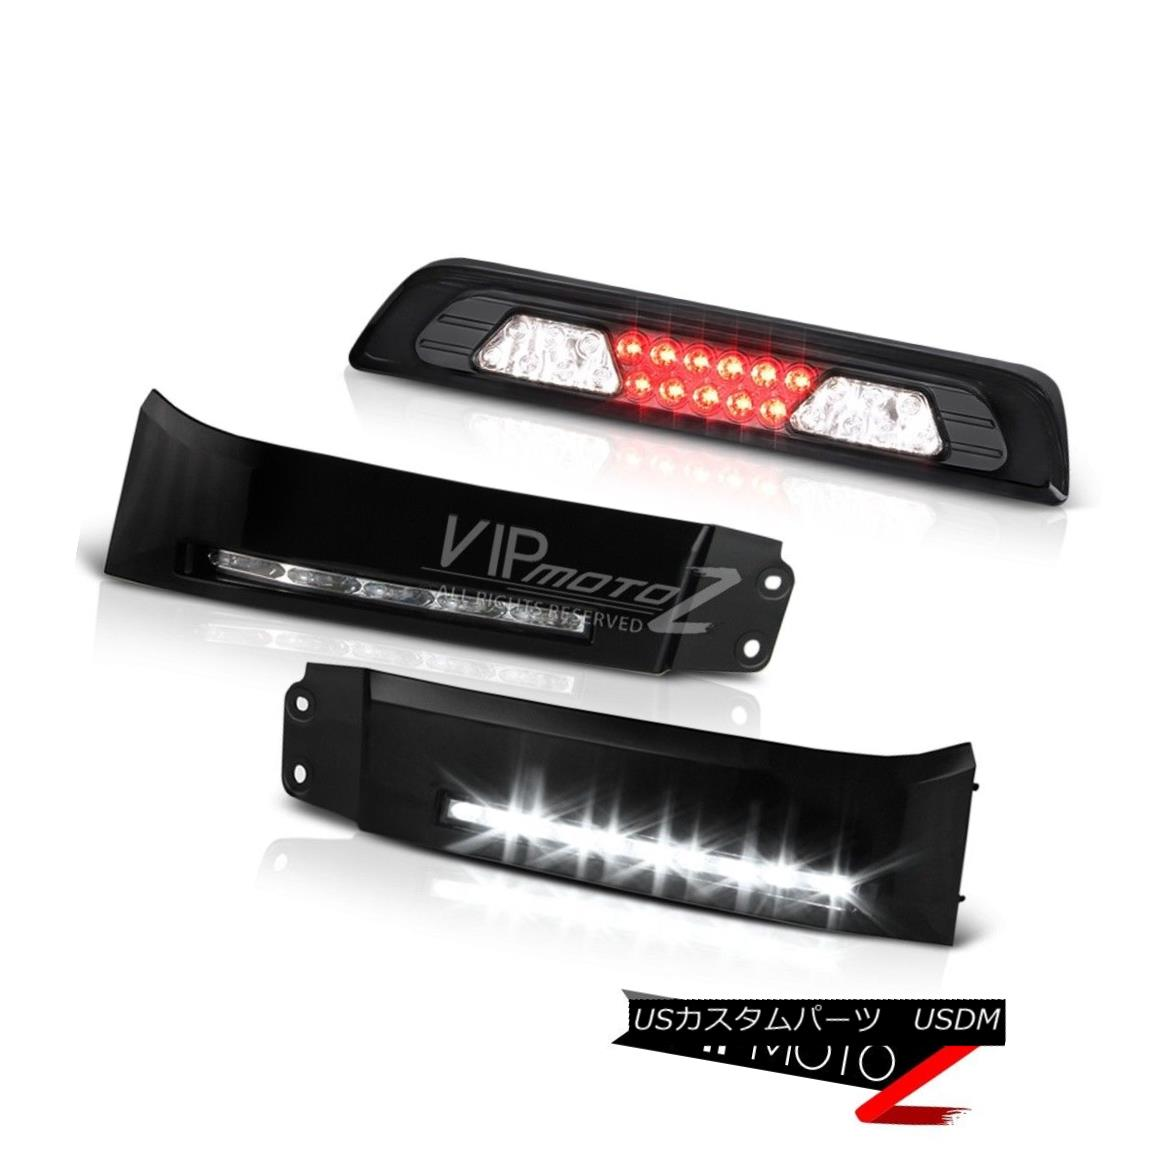 テールライト 2007-2013 Toyota Tundra Platinum Third Brake Light Nighthawk Black Bumper DRL 2007-2013 Toyota Tundra Platinum第3ブレーキライトナイトホークブラックバンパーDRL